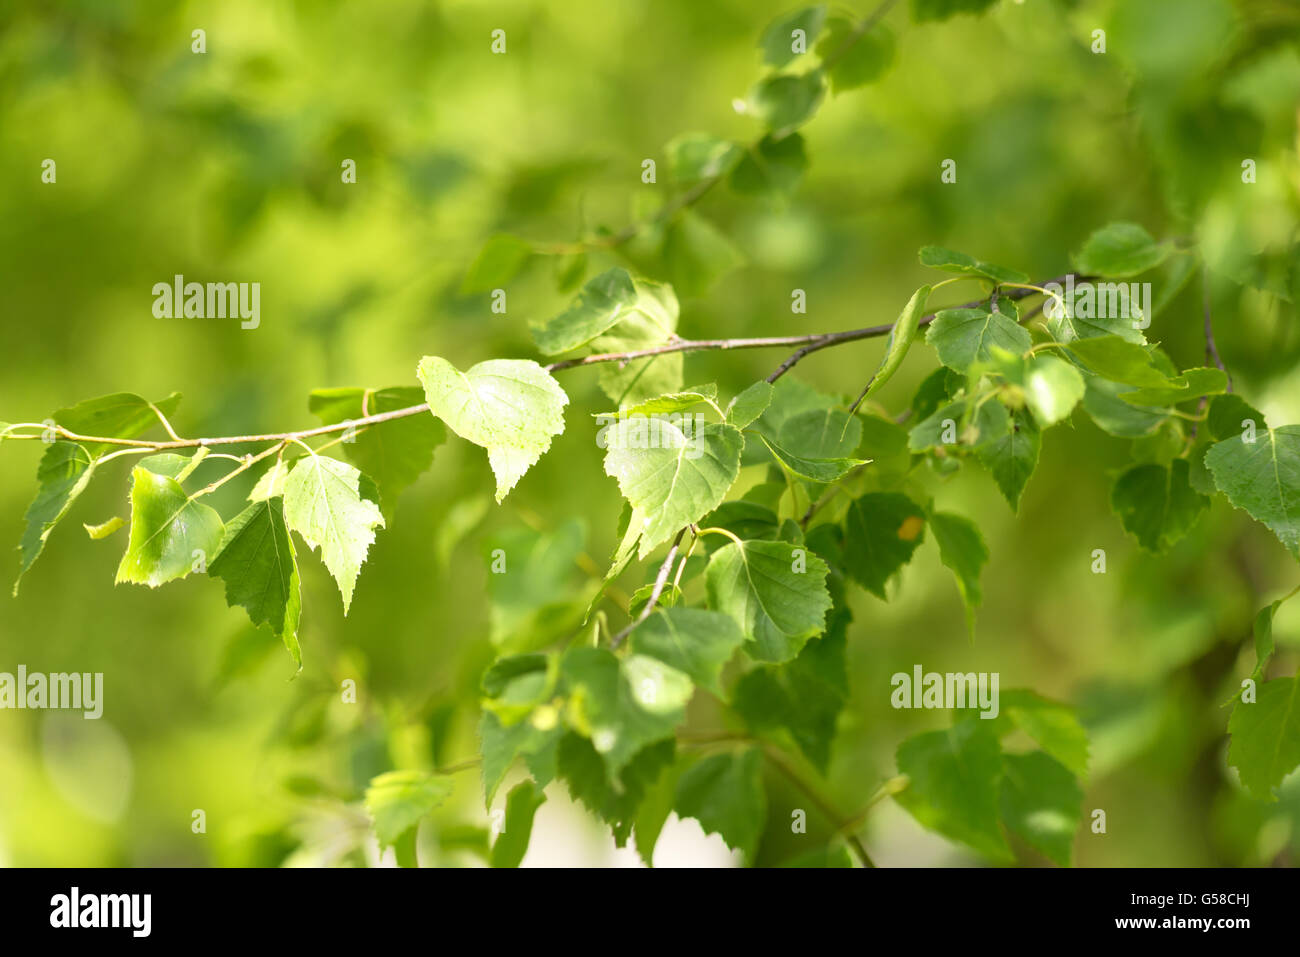 close up shot of green birch leaves - Stock Image